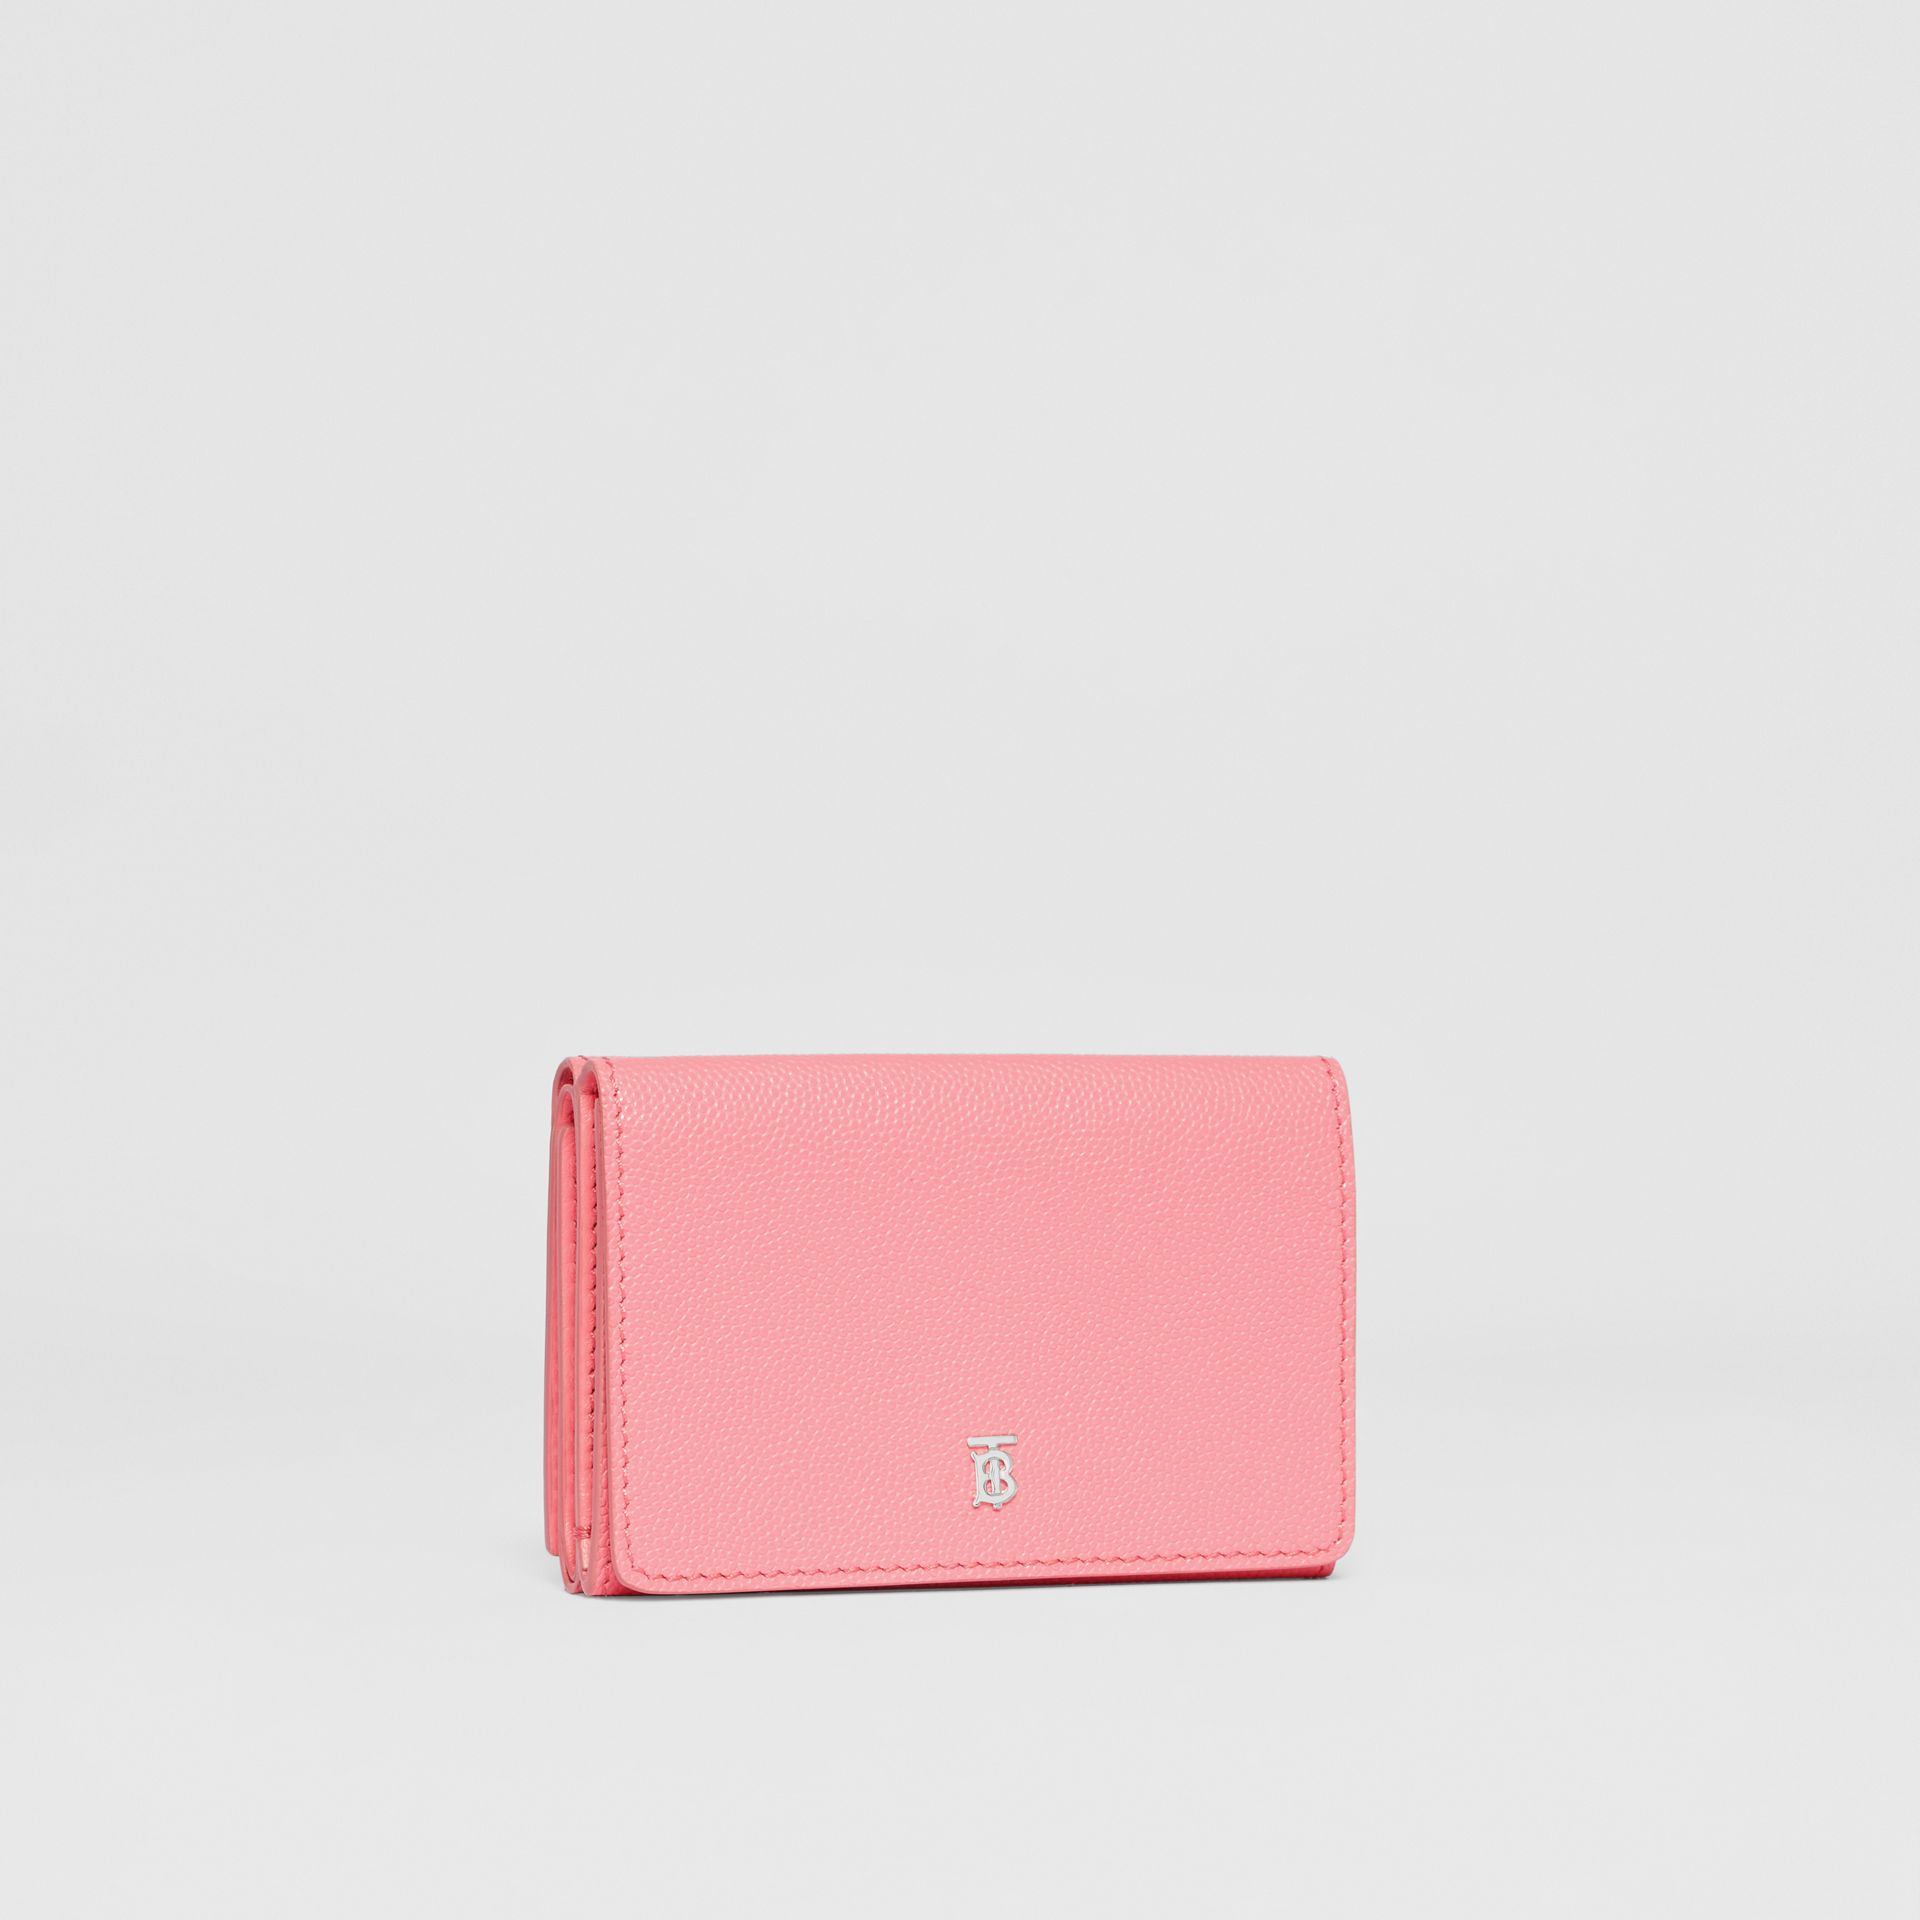 Small Grainy Leather Folding Wallet in Candy Floss/palladio - Women | Burberry - gallery image 3